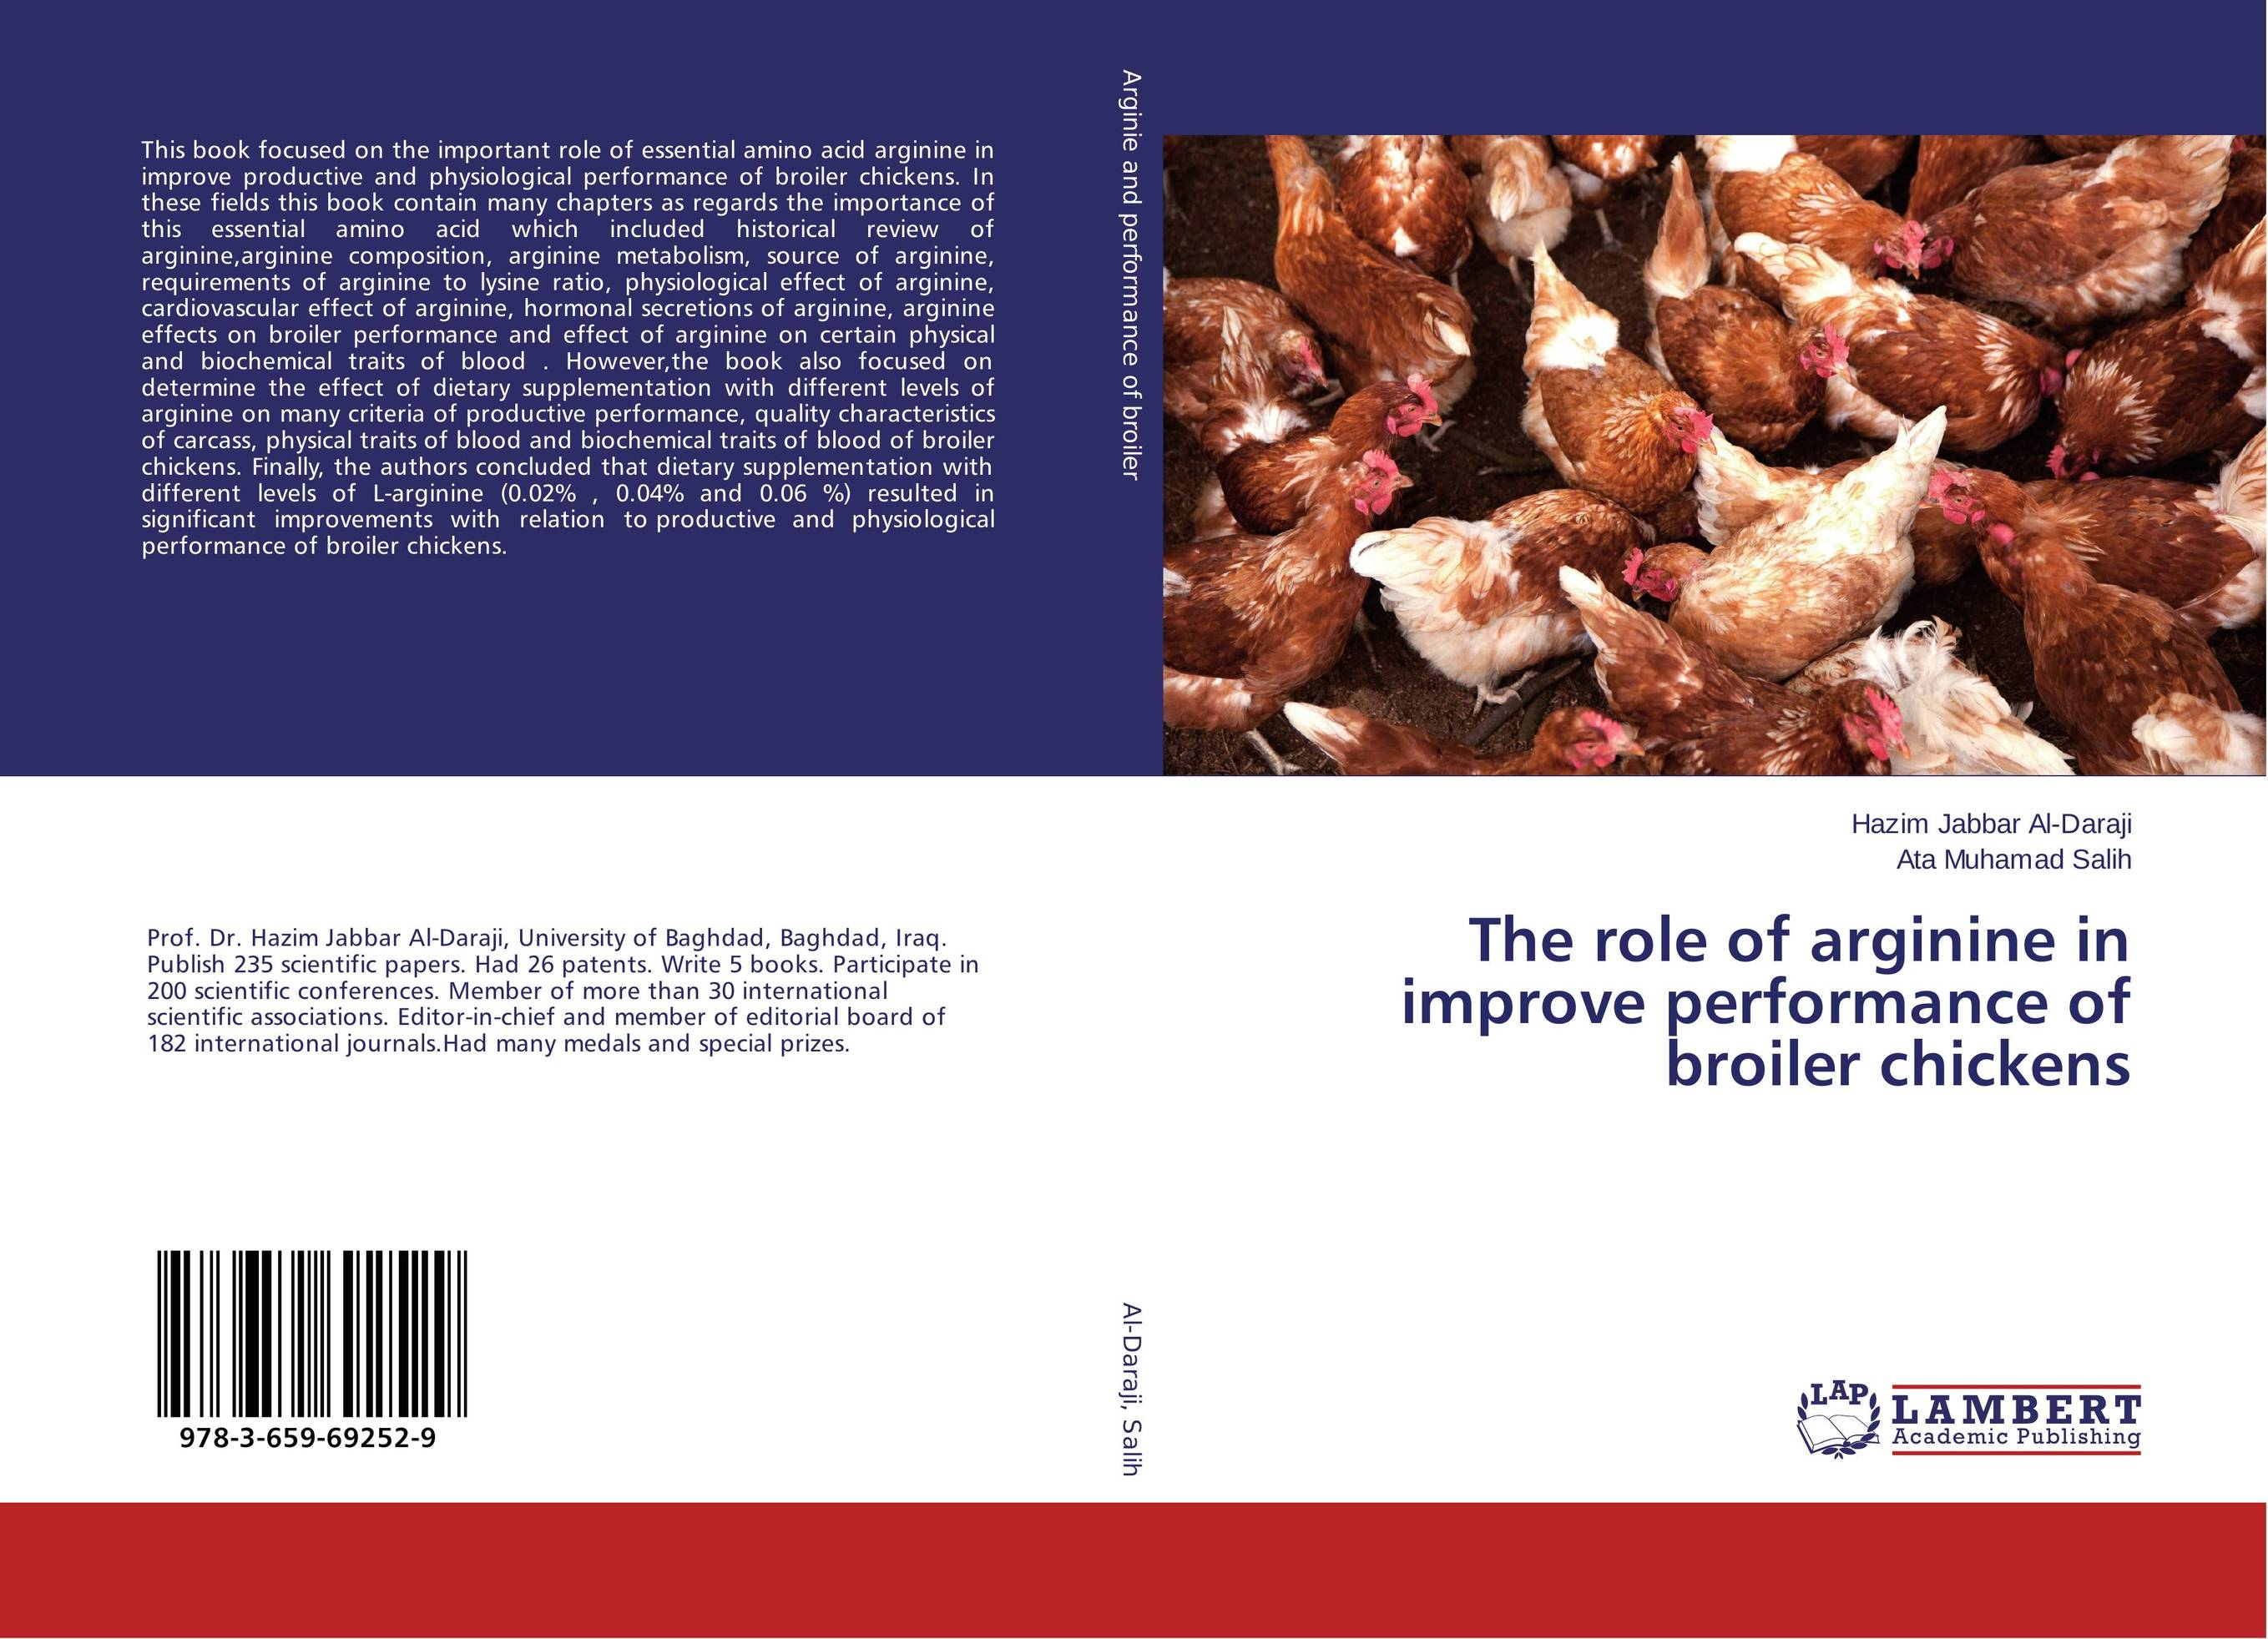 купить The role of arginine in improve performance of broiler chickens недорого